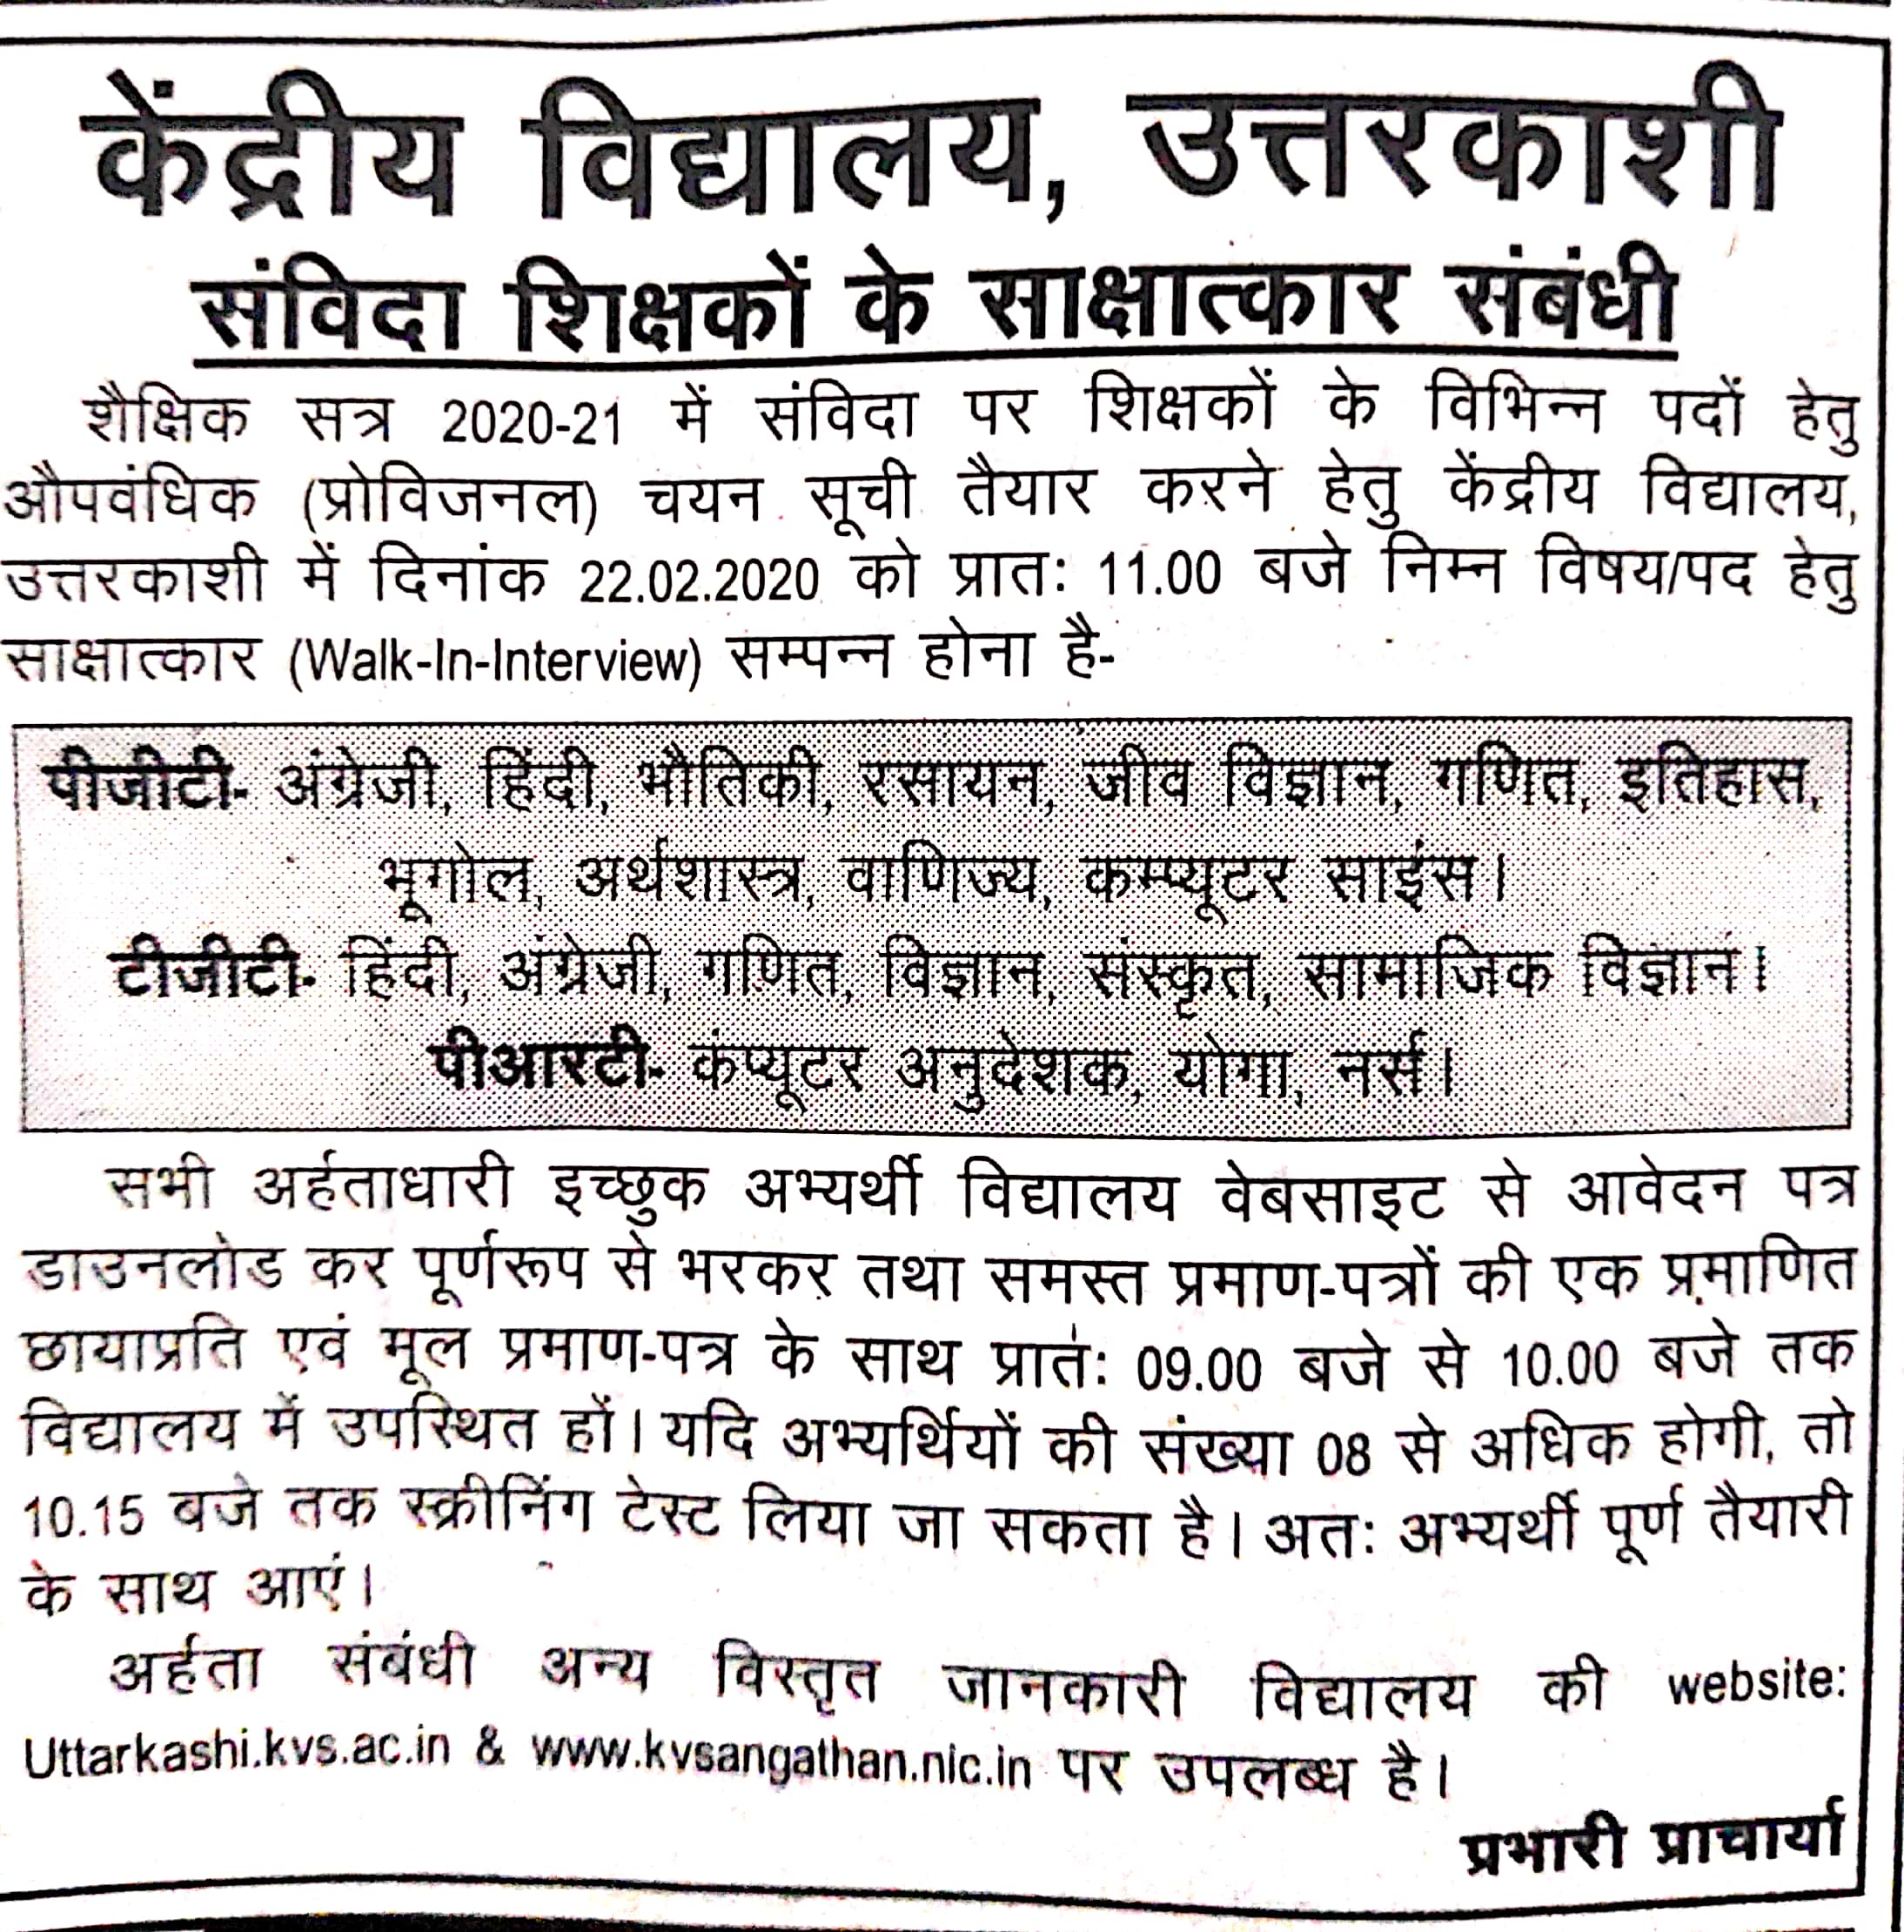 Teaching & Non-Teaching Staff Recruitment in KV Uttarkashi